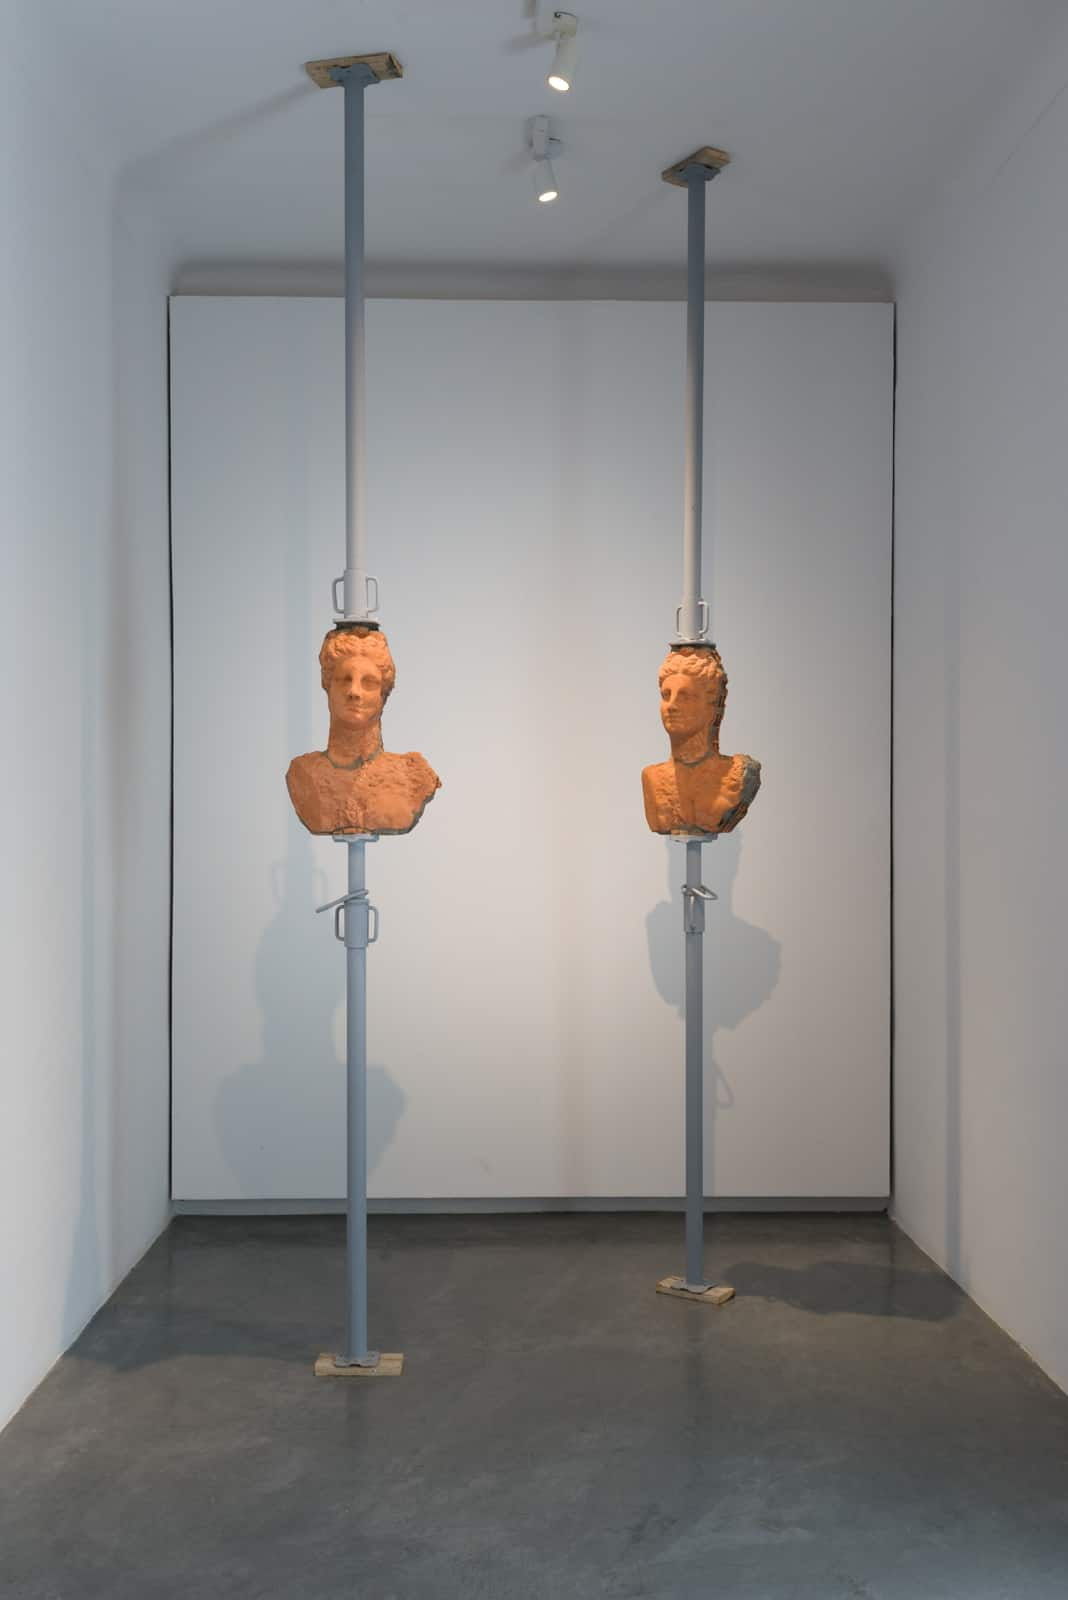 Malek Gnaoui, SC20/between two (Diptych), 2020, bricks, cement and iron construction props